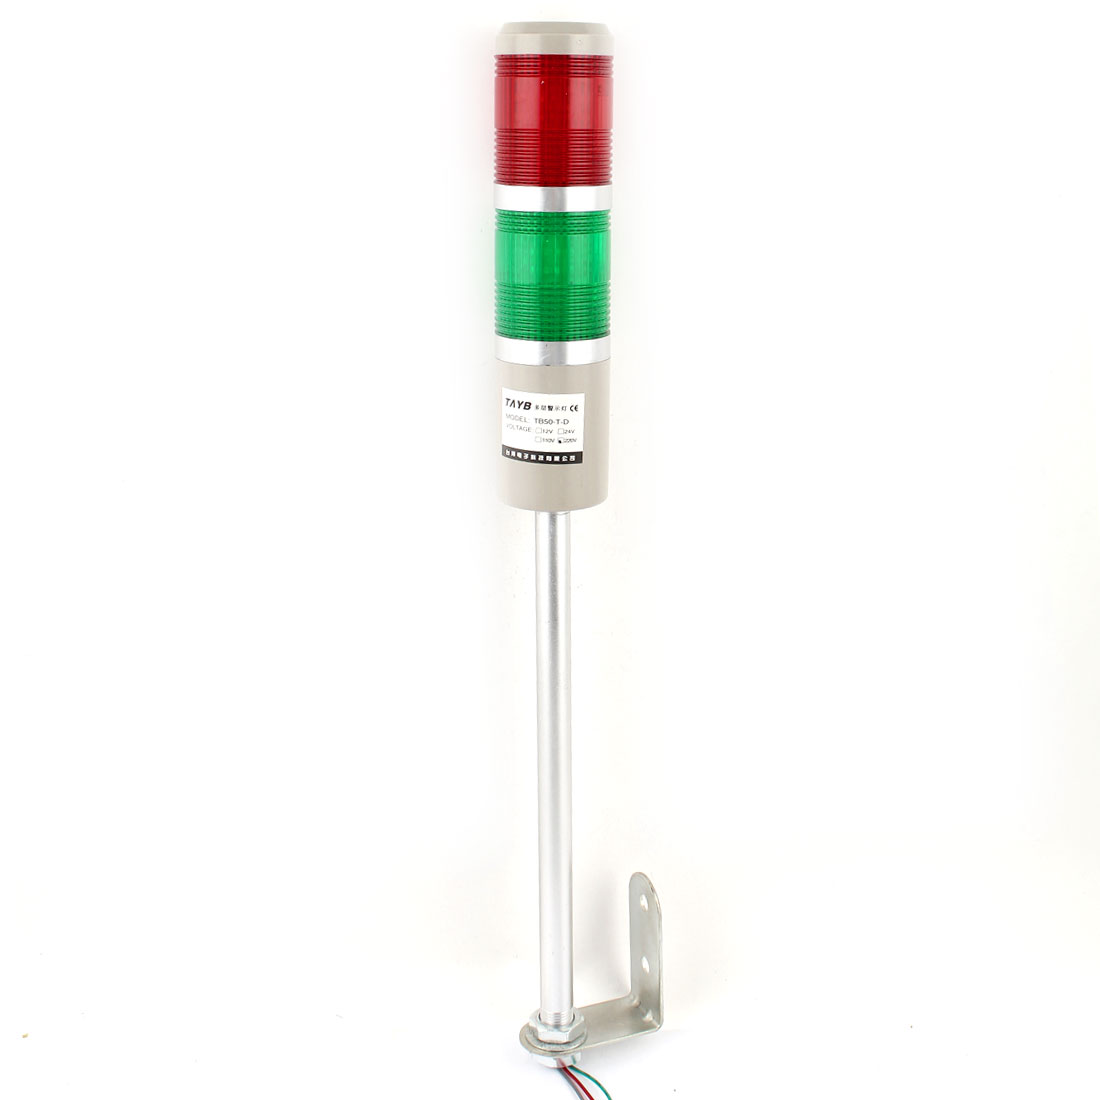 DC 24V Industrial Security Green Red Flash LED Signal Tower Warning Light